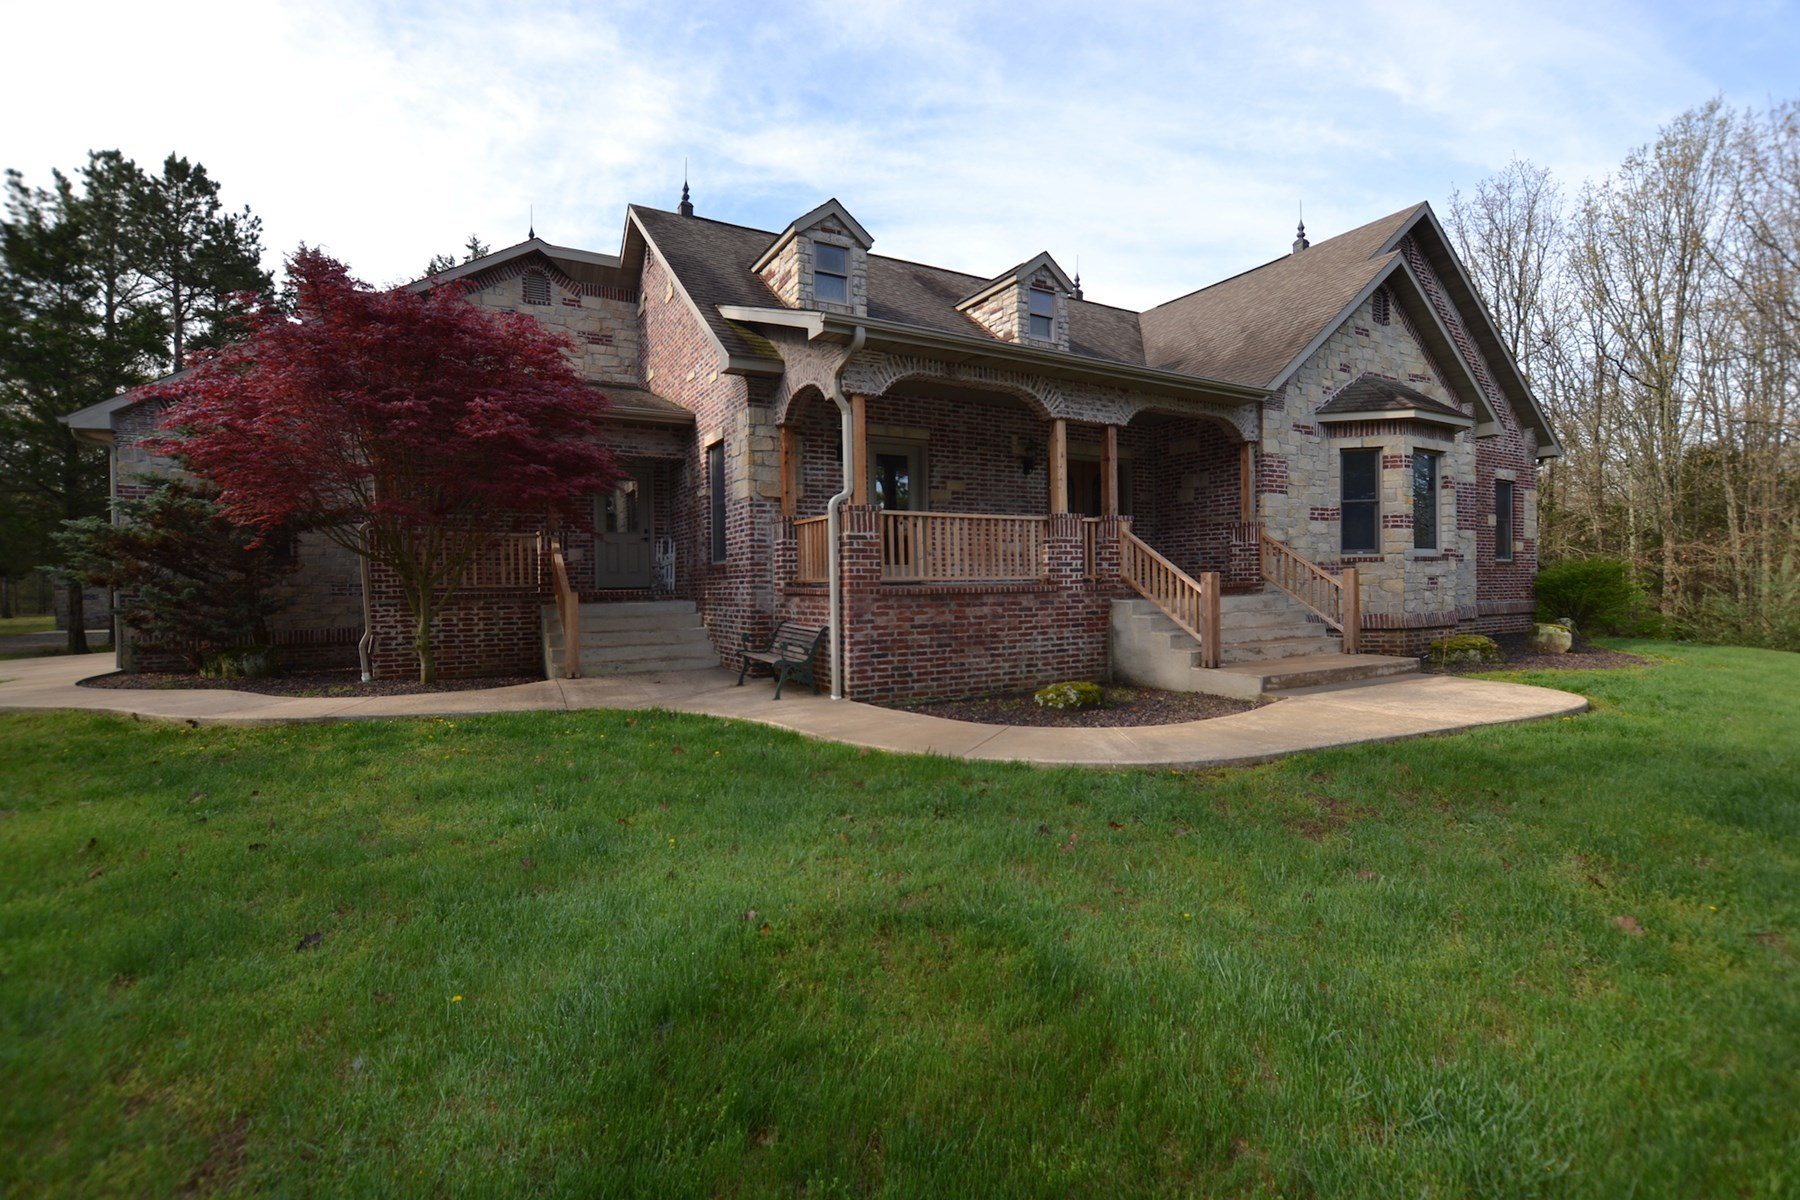 Custom Home and Land for Sale in South Central Missouri